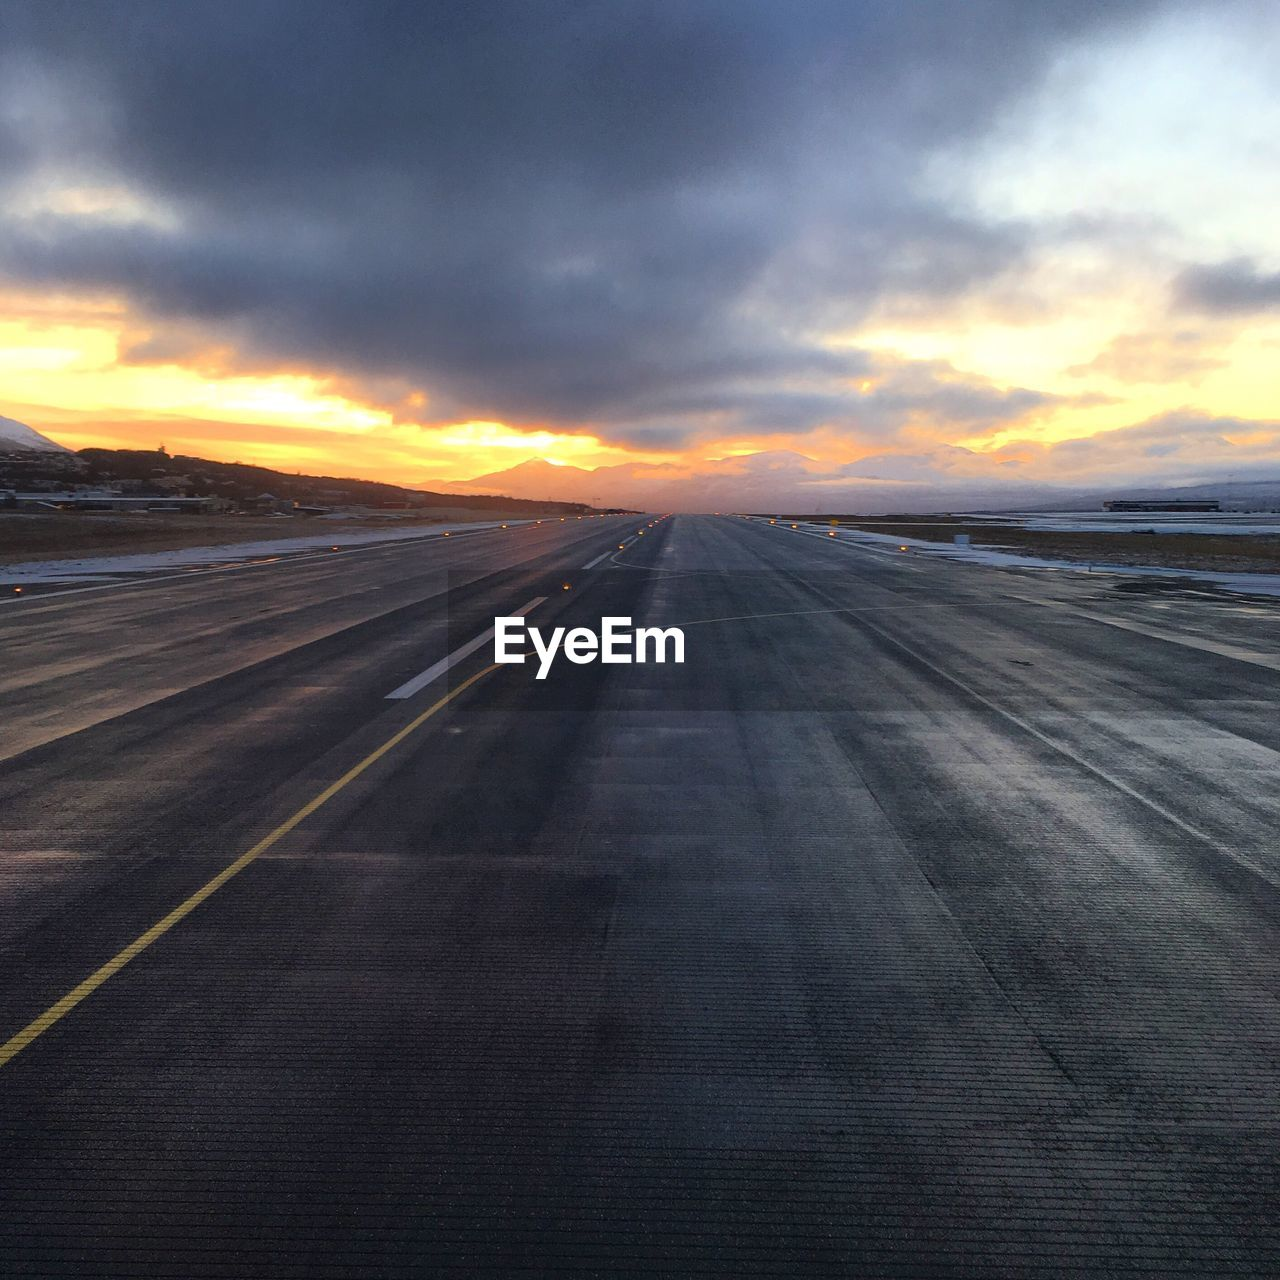 sunset, sky, transportation, cloud - sky, airplane, airport runway, outdoors, scenics, airport, nature, runway, no people, tranquility, beauty in nature, landscape, day